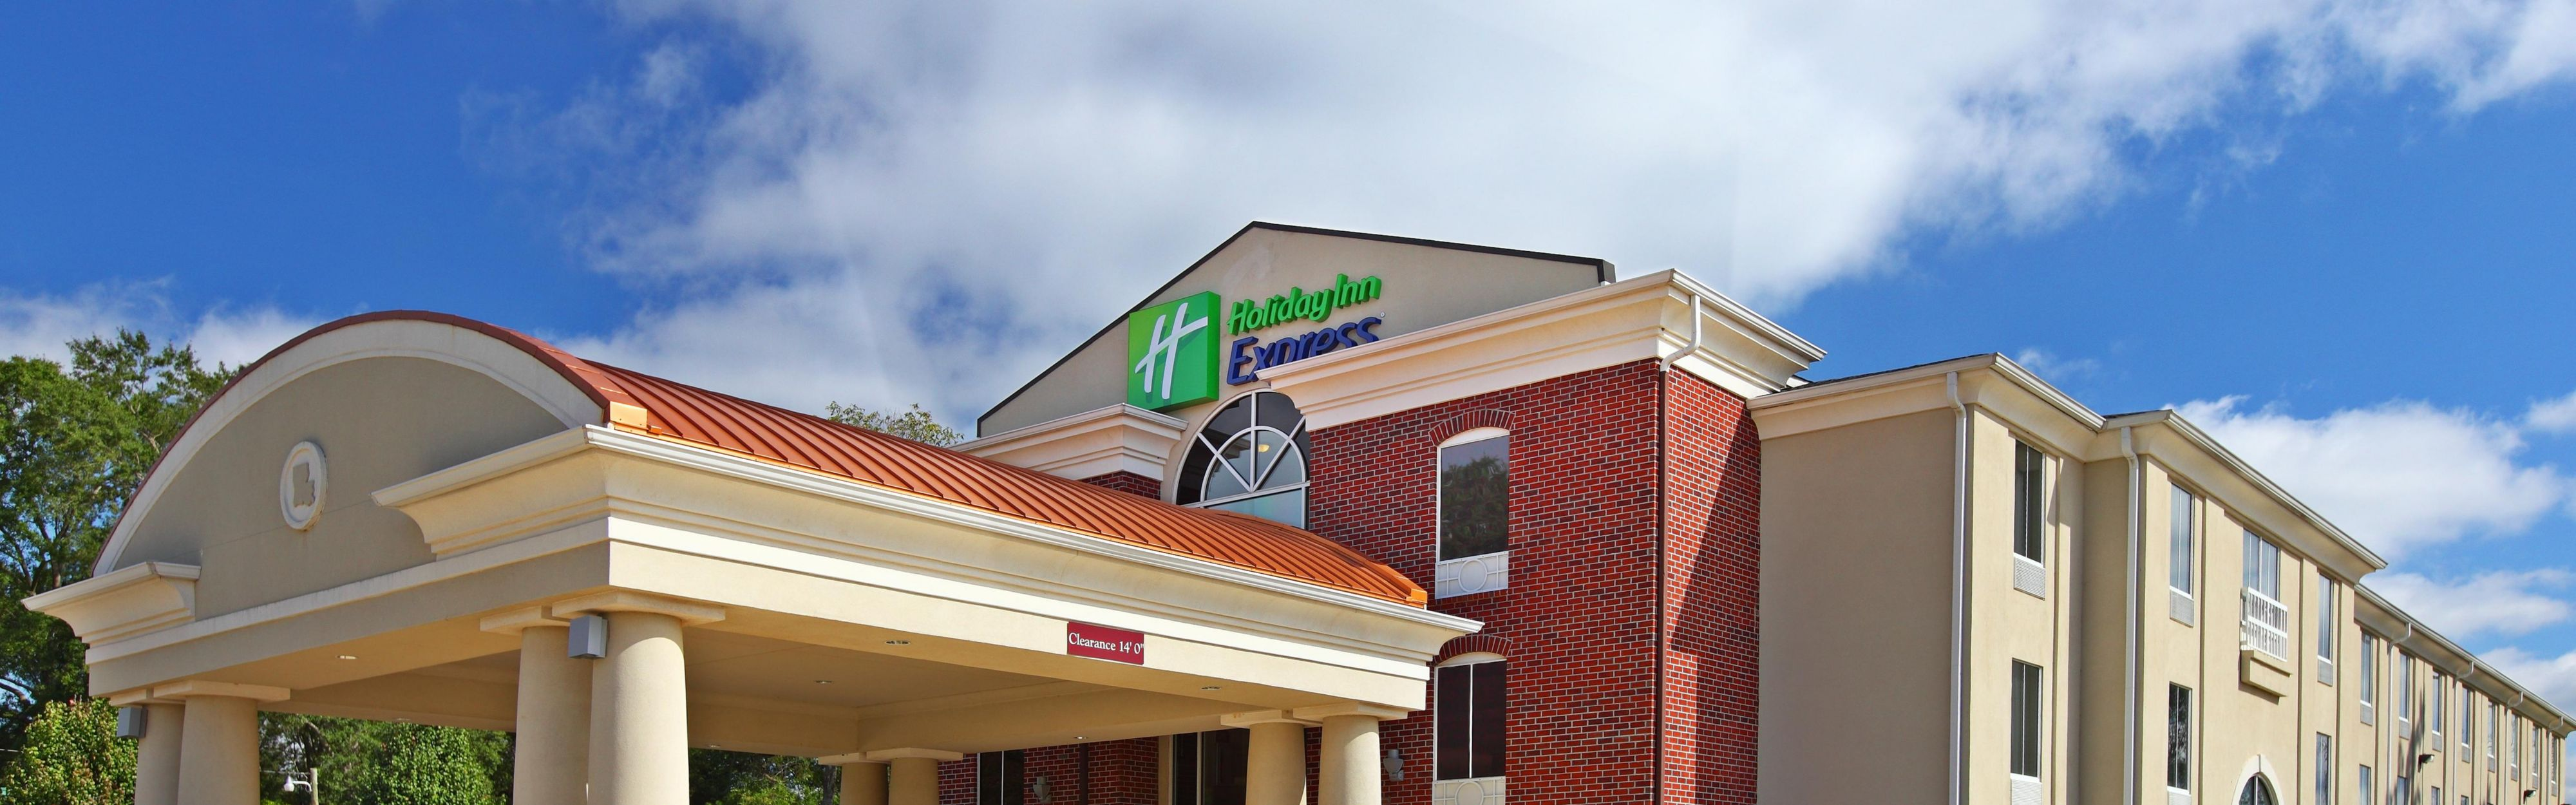 Holiday inn express discounts coupons